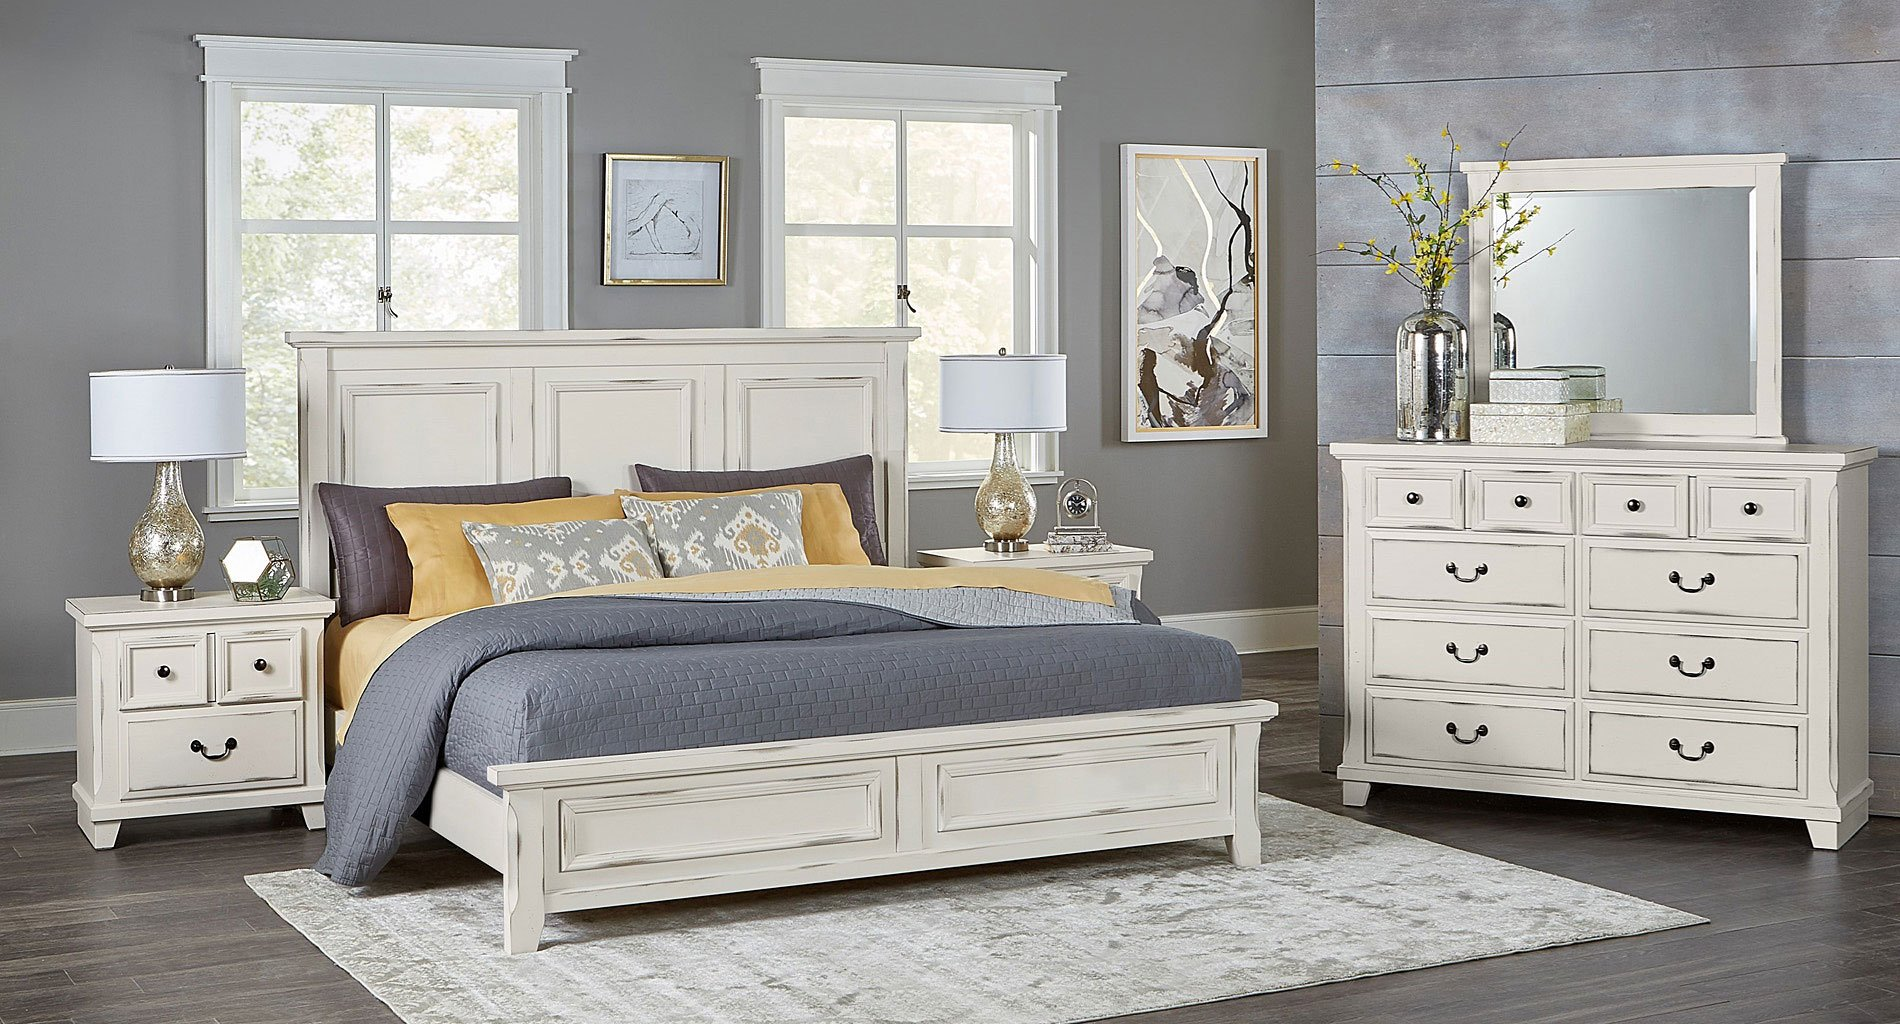 Timber creek mansion bedroom set distressed white - Distressed bedroom furniture sets ...